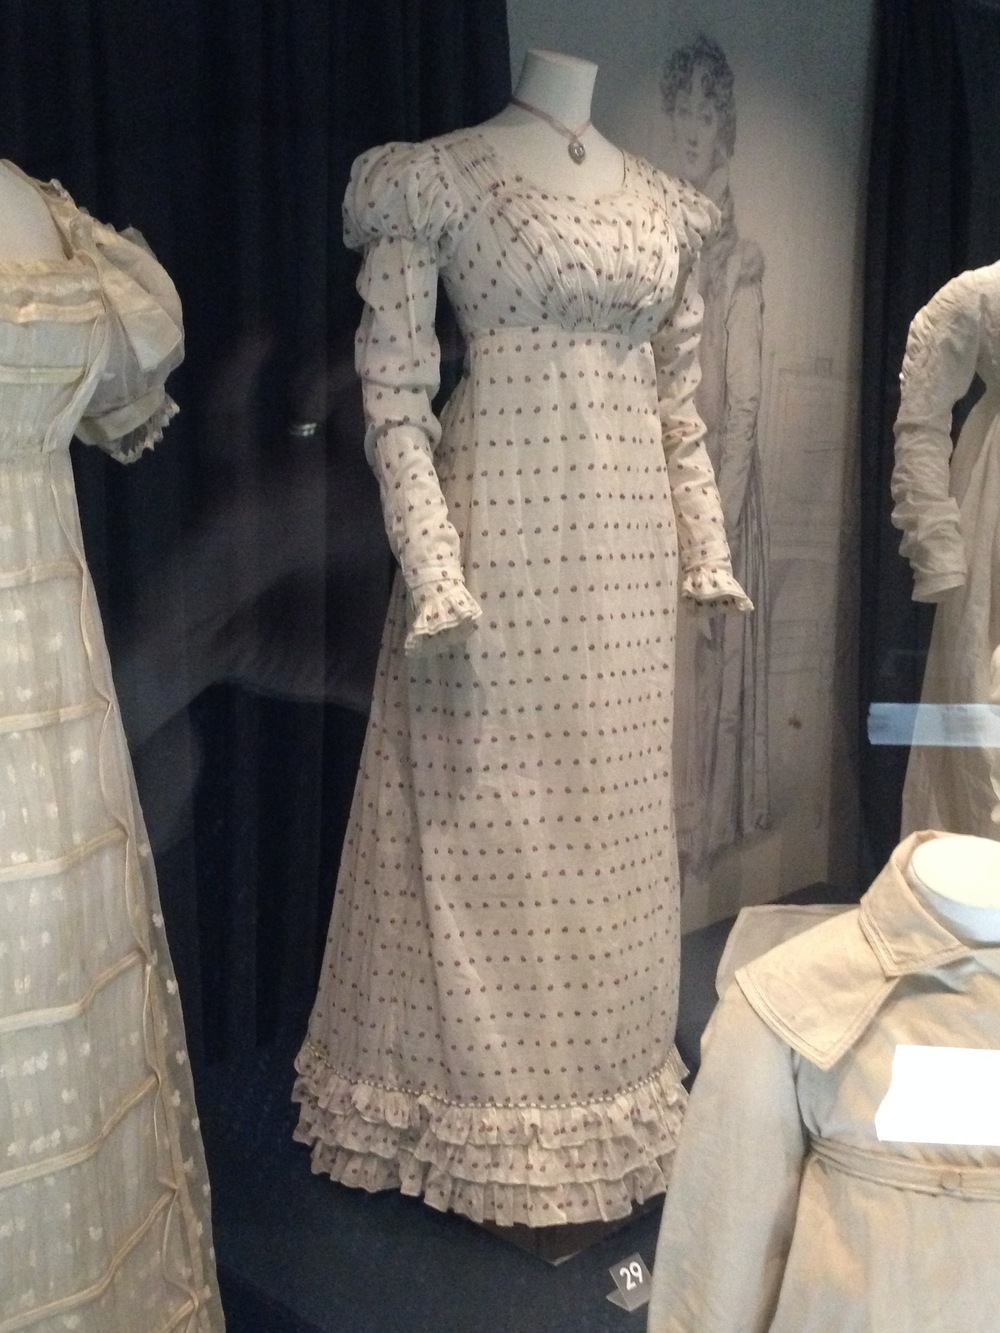 They had quite a few Regency-era dresses. Here is a plainer Regency day dress, made out of printed fabric.